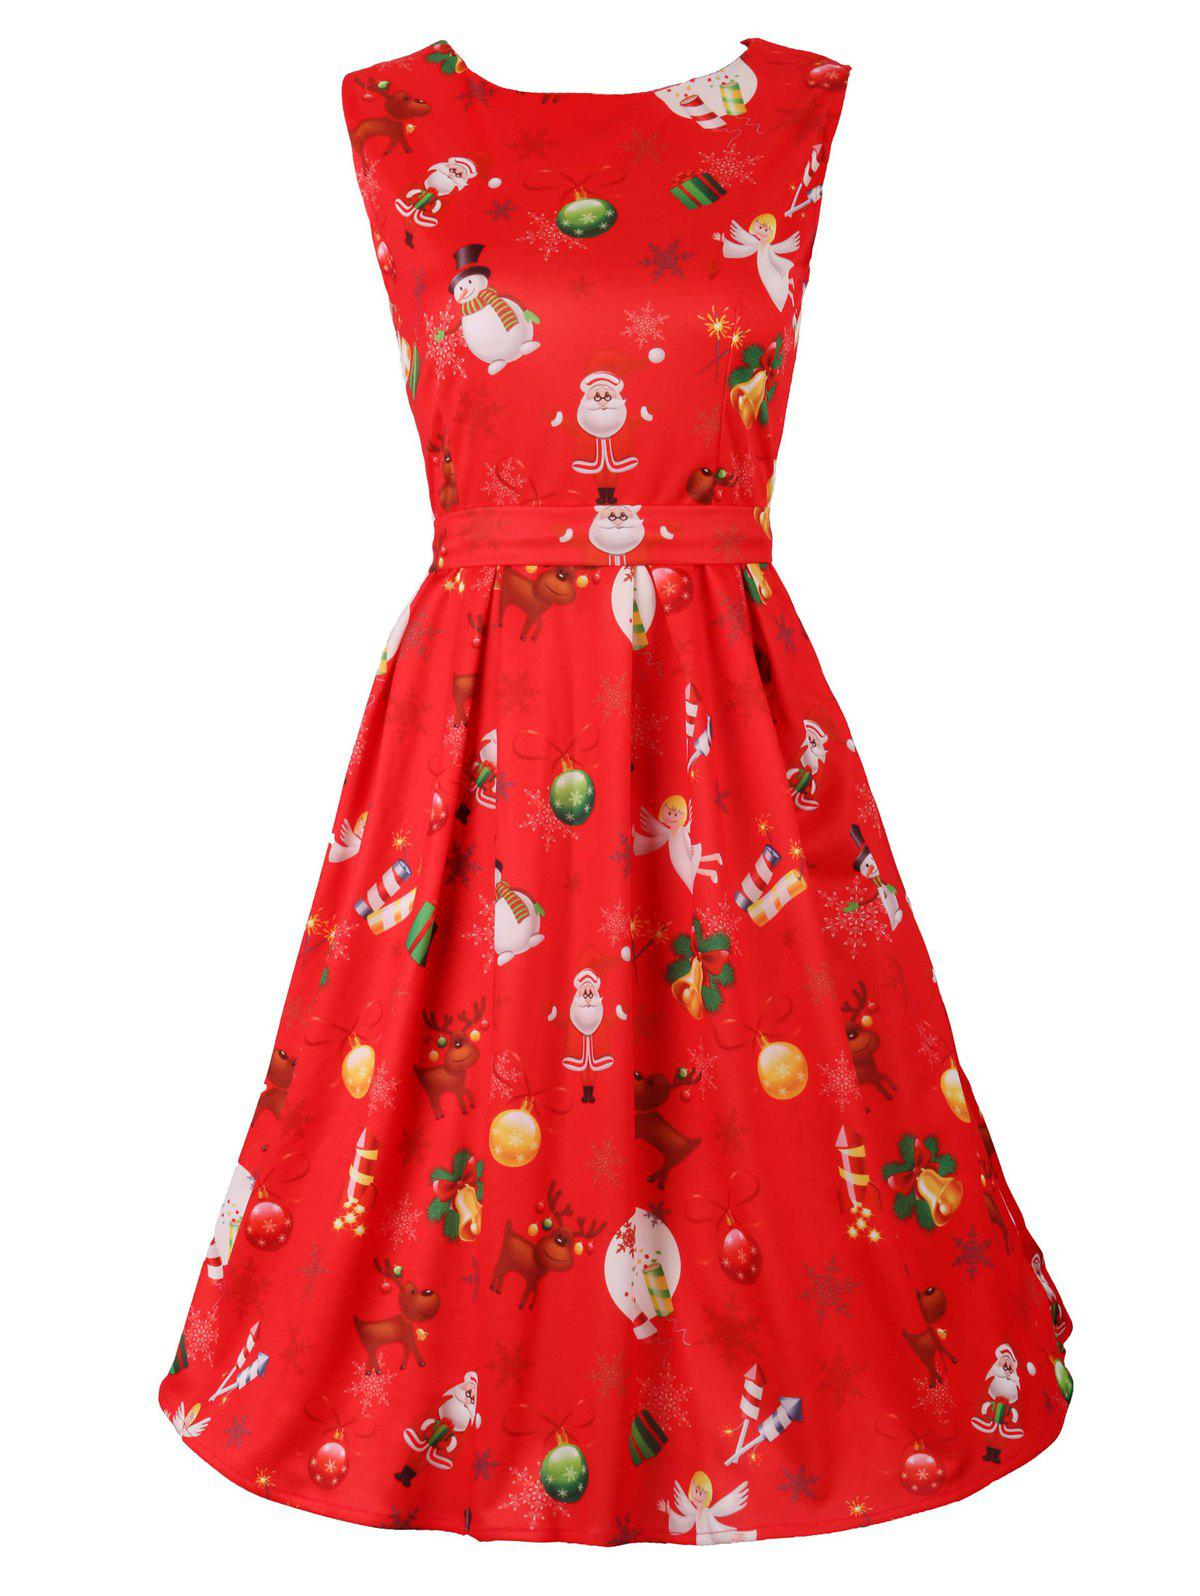 Belted Christmas Print Skater Party DressWOMEN<br><br>Size: 2XL; Color: RED; Style: Vintage; Material: Cotton Blend,Polyester; Silhouette: A-Line; Dresses Length: Knee-Length; Neckline: Scoop Neck; Sleeve Length: Sleeveless; Pattern Type: Print; With Belt: Yes; Season: Fall,Spring,Summer; Weight: 0.3700kg; Package Contents: 1 x Dress  1 x Belt;